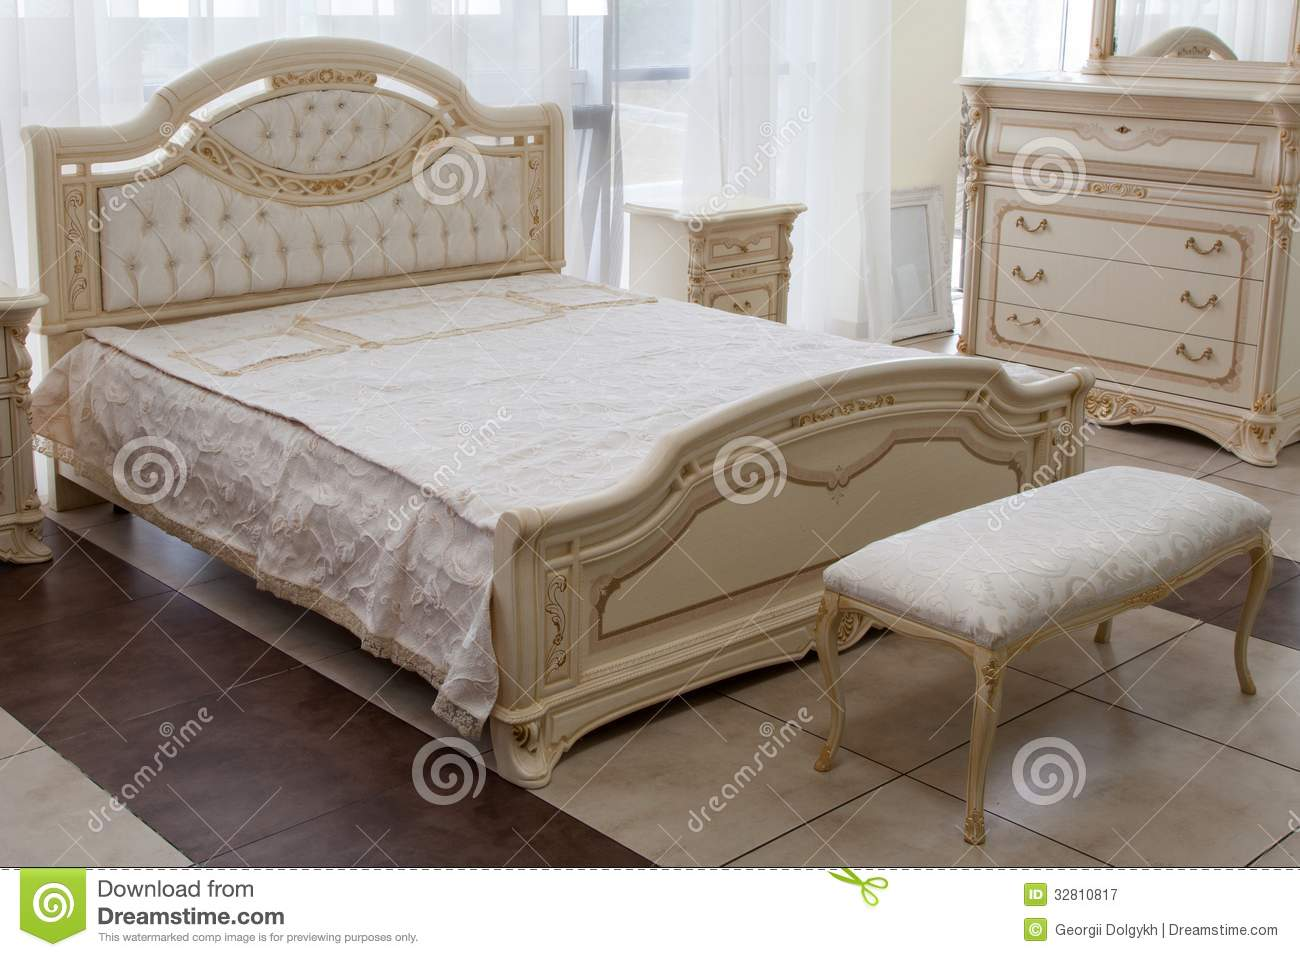 Awesome chambre a coucher royal italy images design for Chambre a coucher moderne